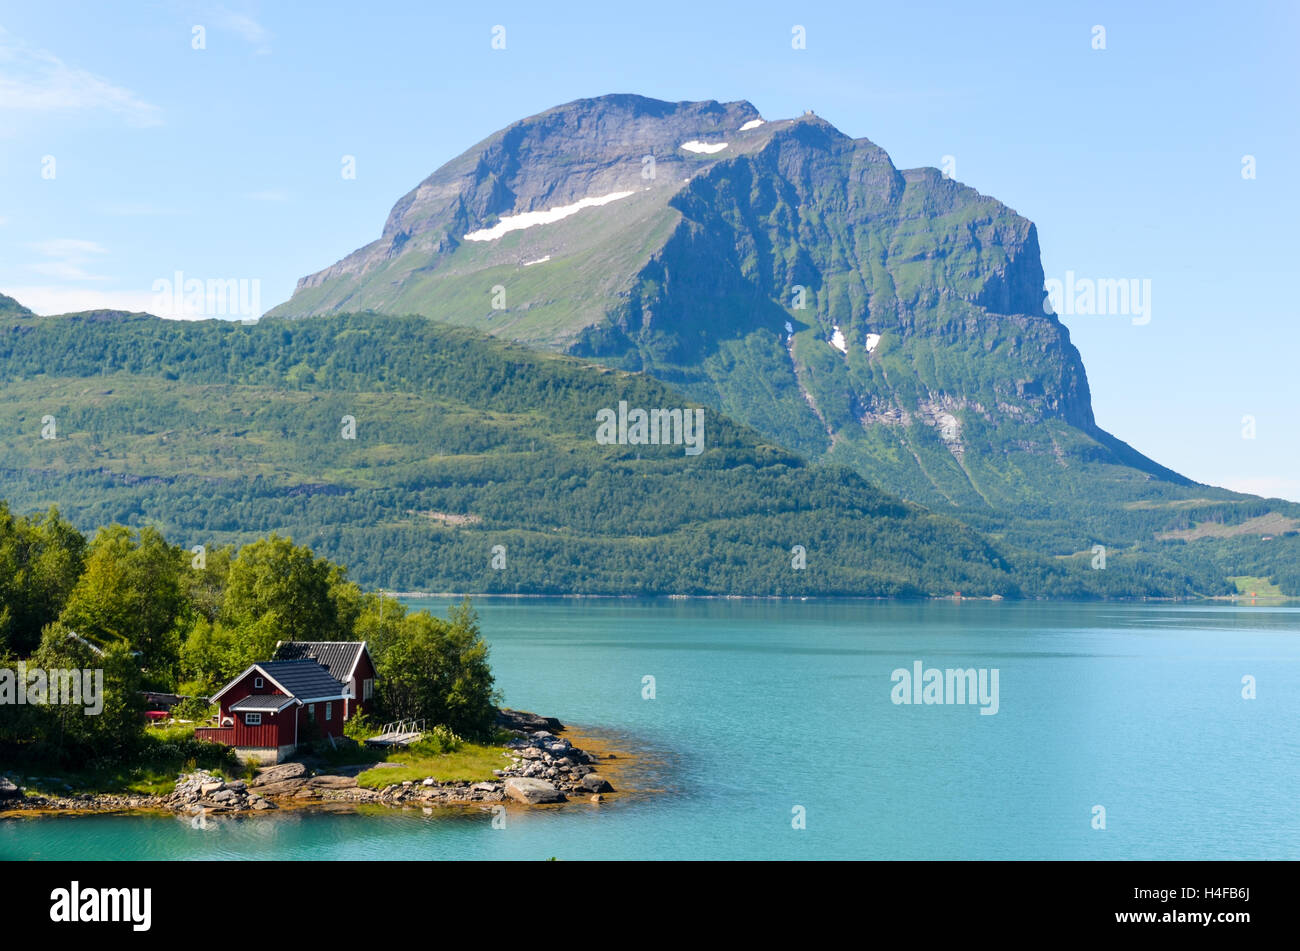 Cabin by the turquoise waters of Glomfjord, Northern Norway - Stock Image